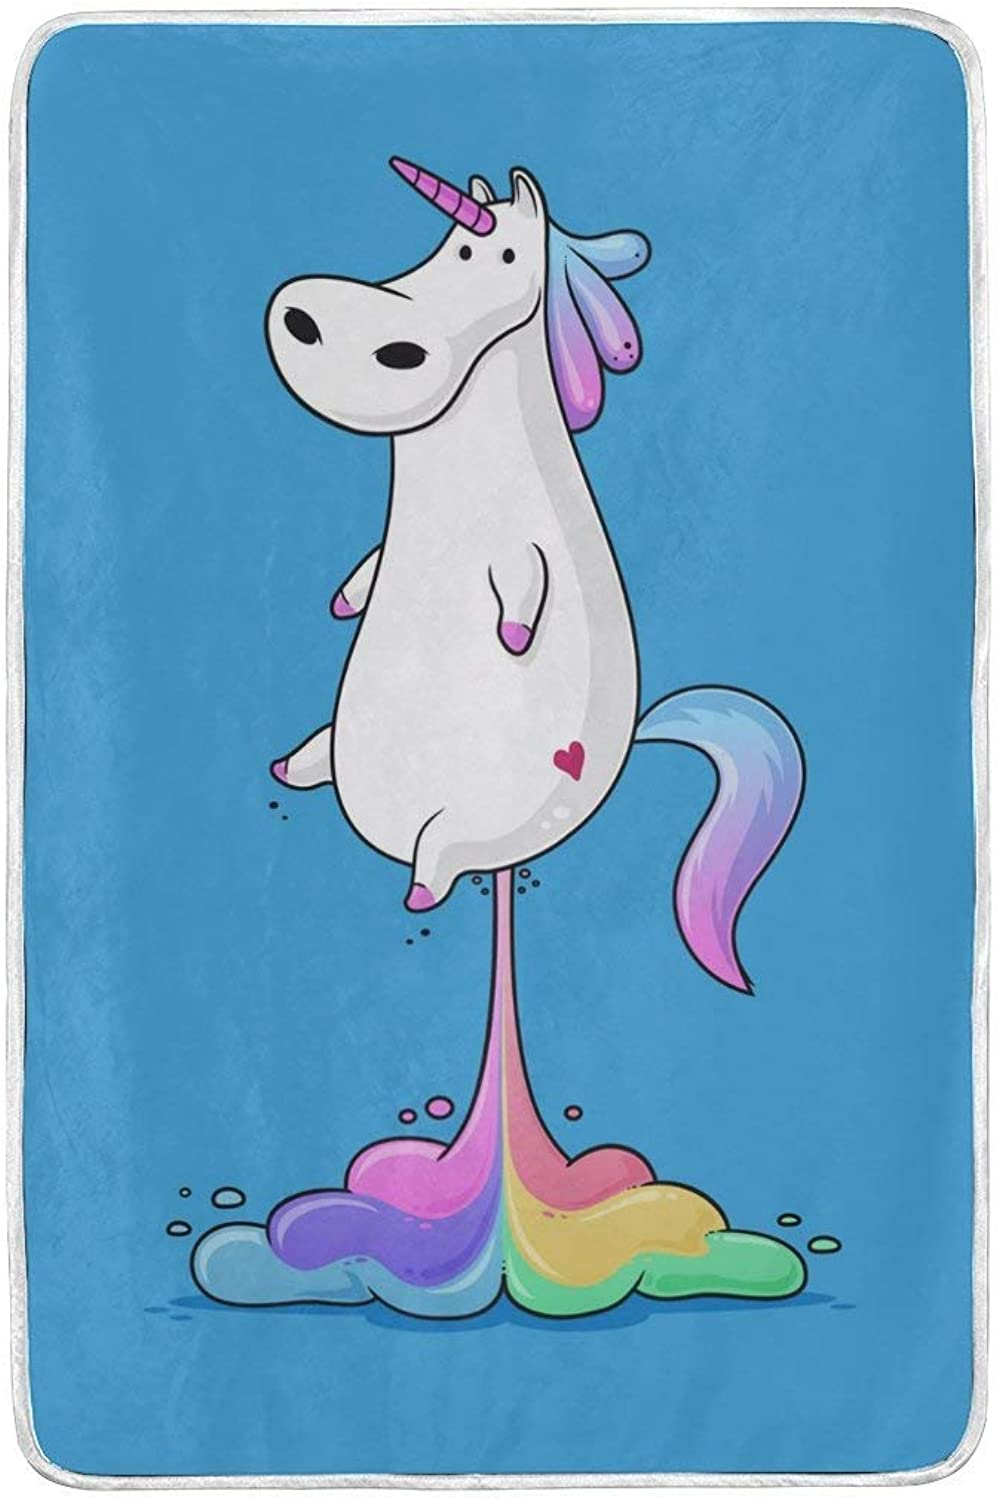 ALAZA Rainbow Unicorn Plush Throws Siesta Camping Travel Fleece Blankets Lightweight Bed SOFE Size 60x90inches